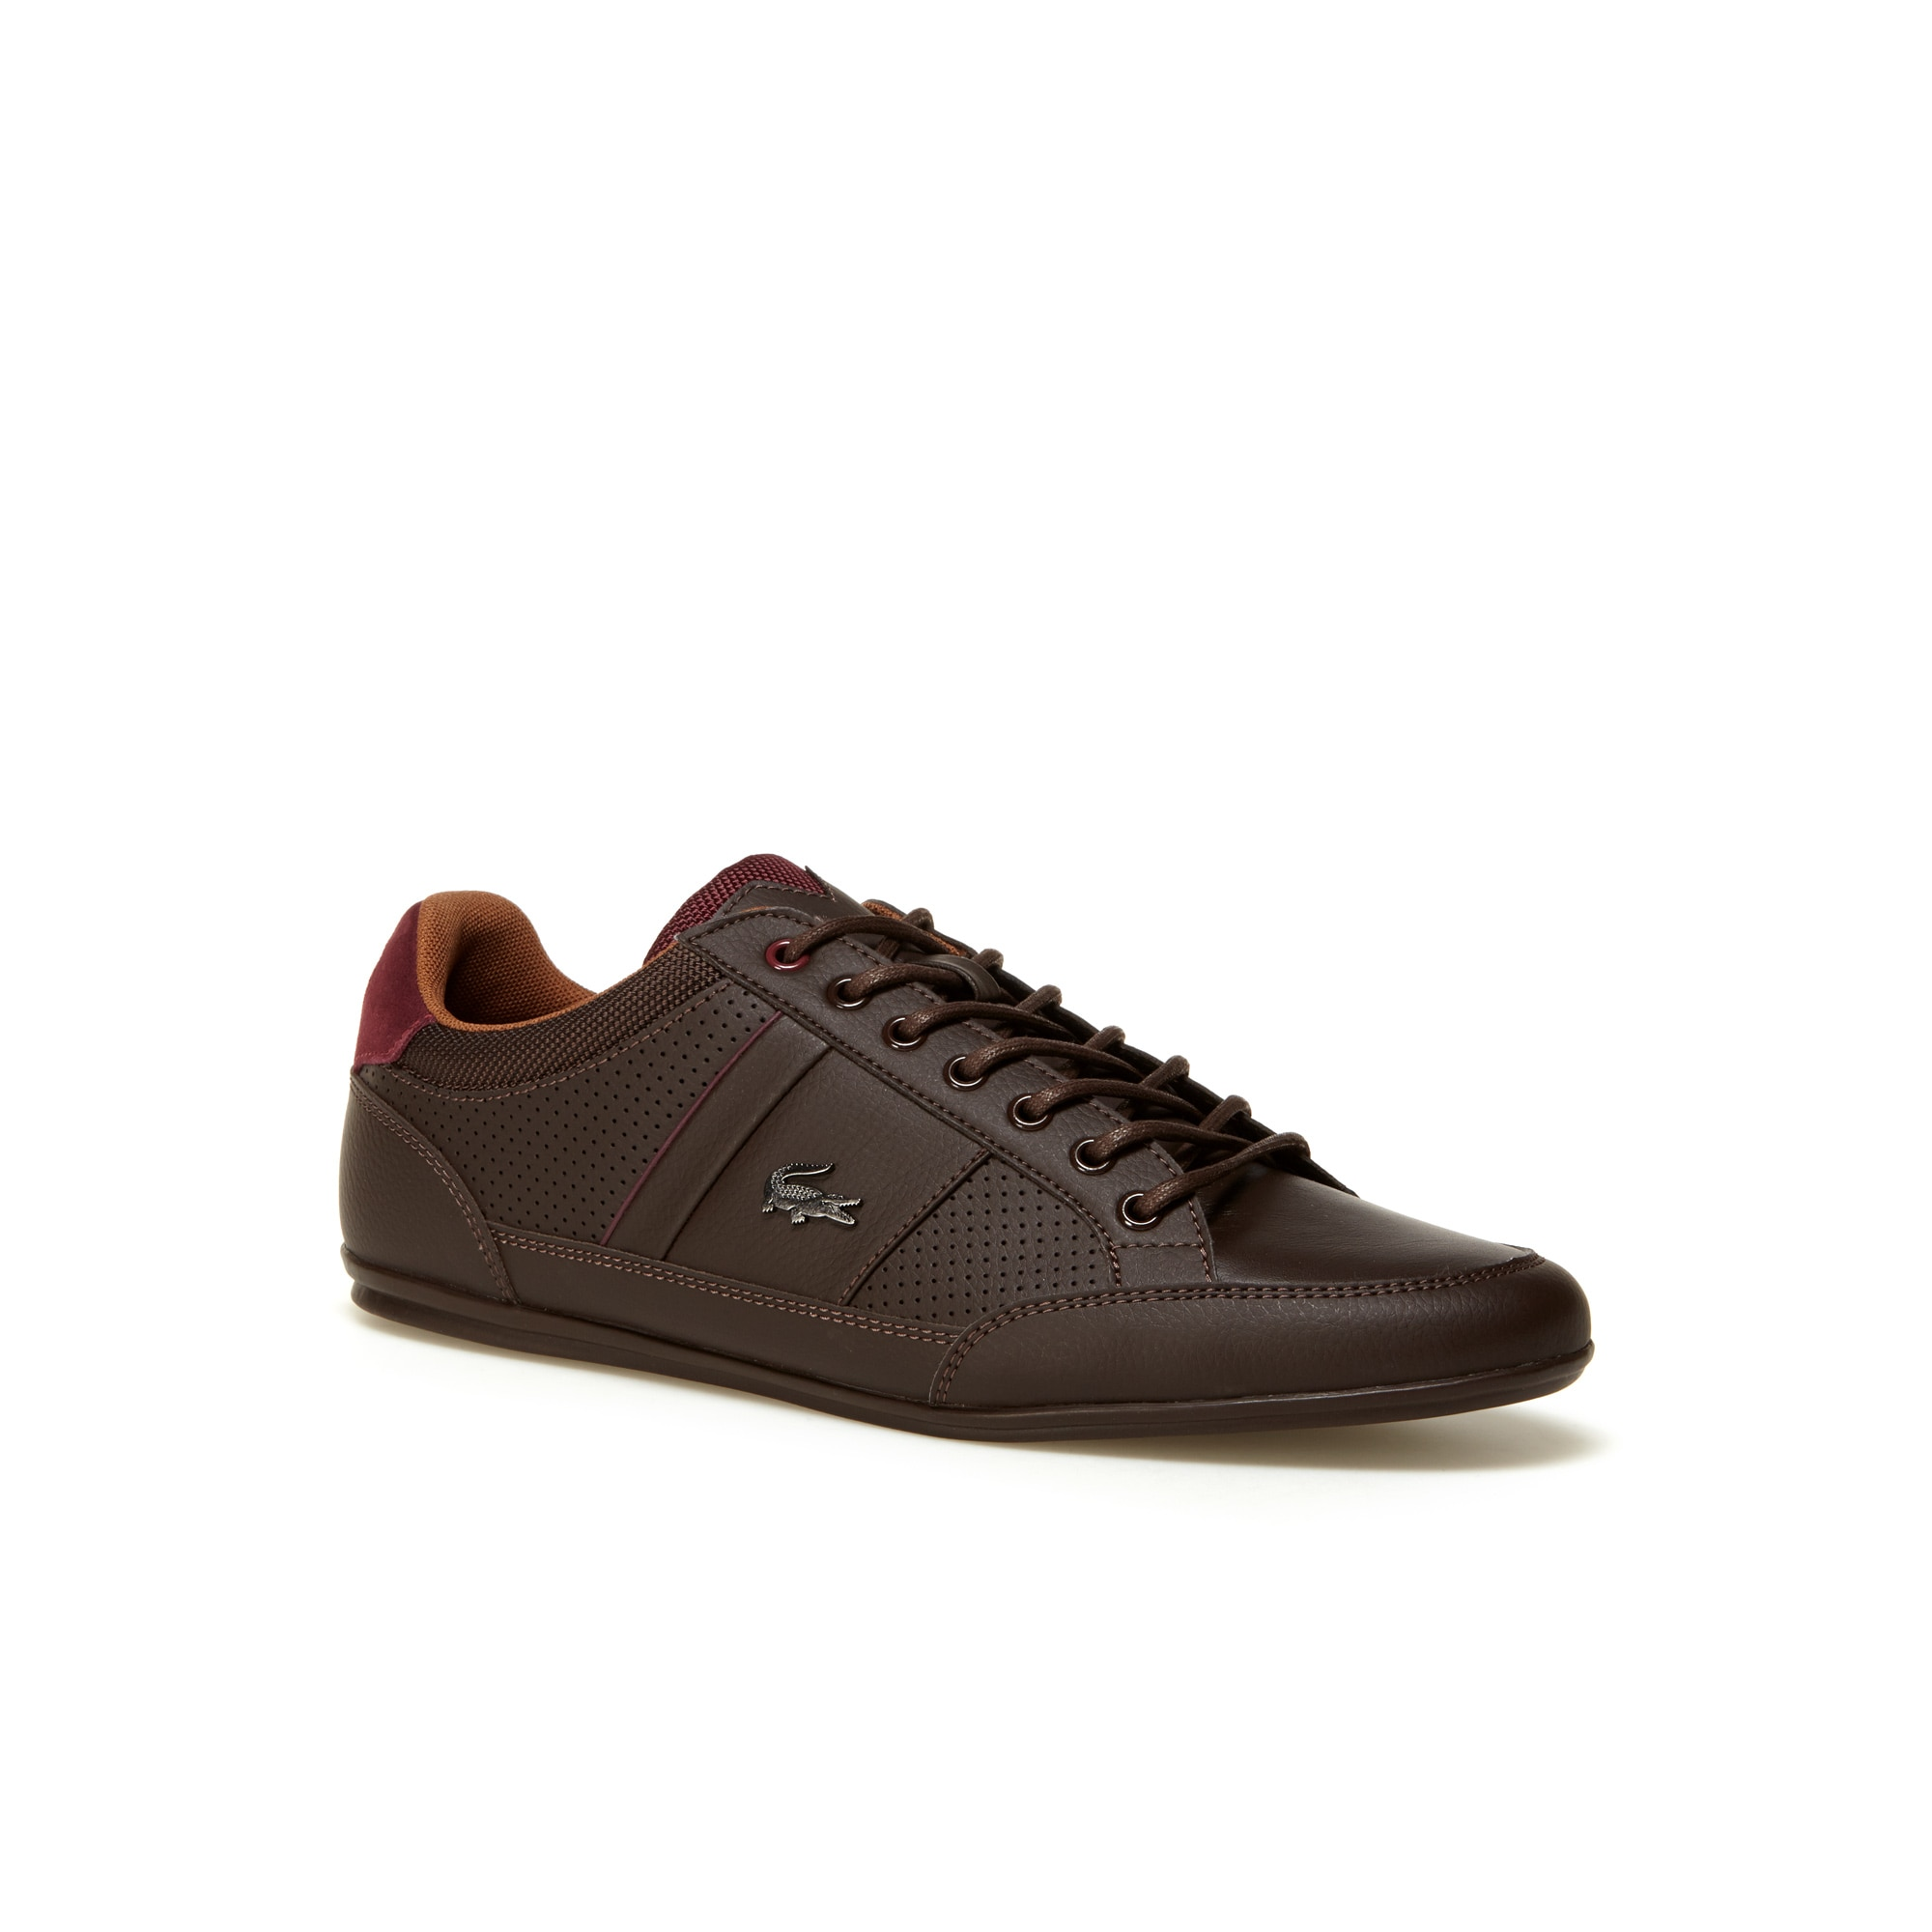 Men's Chaymon Punched Leather Trainers